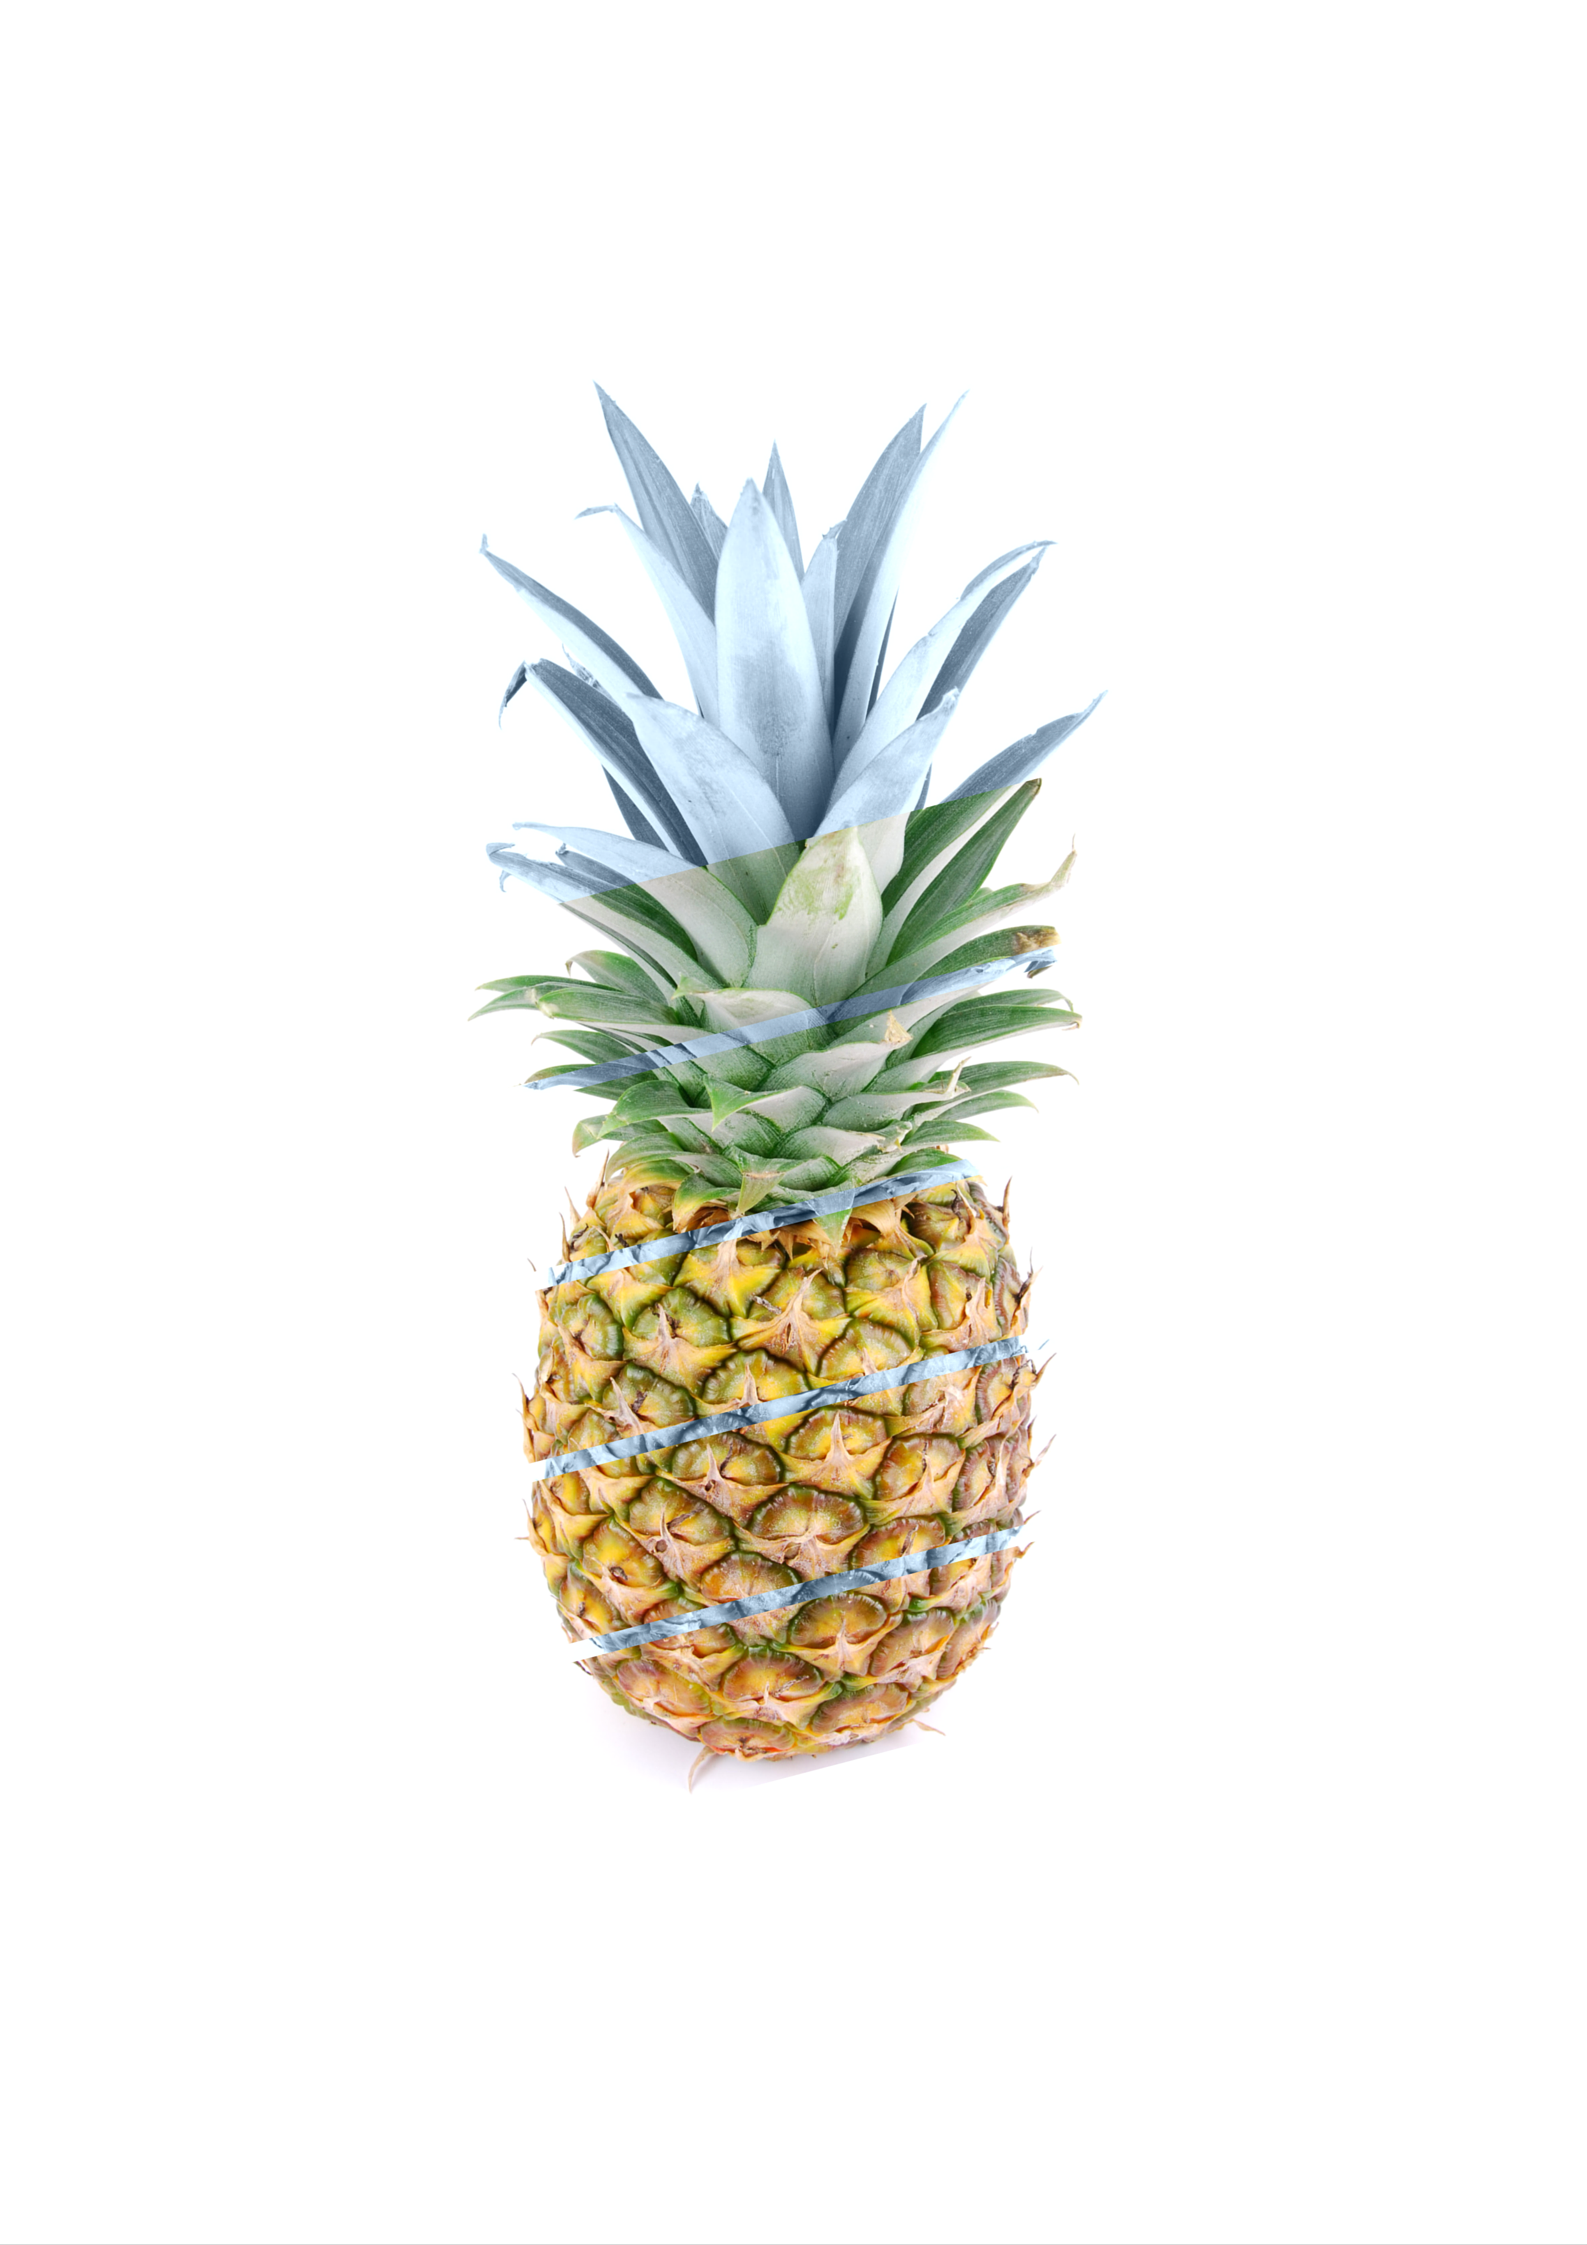 picture about Printable Pineapple referred to as Image Pineapple Printable Artwork - Casa Watkins Dwelling